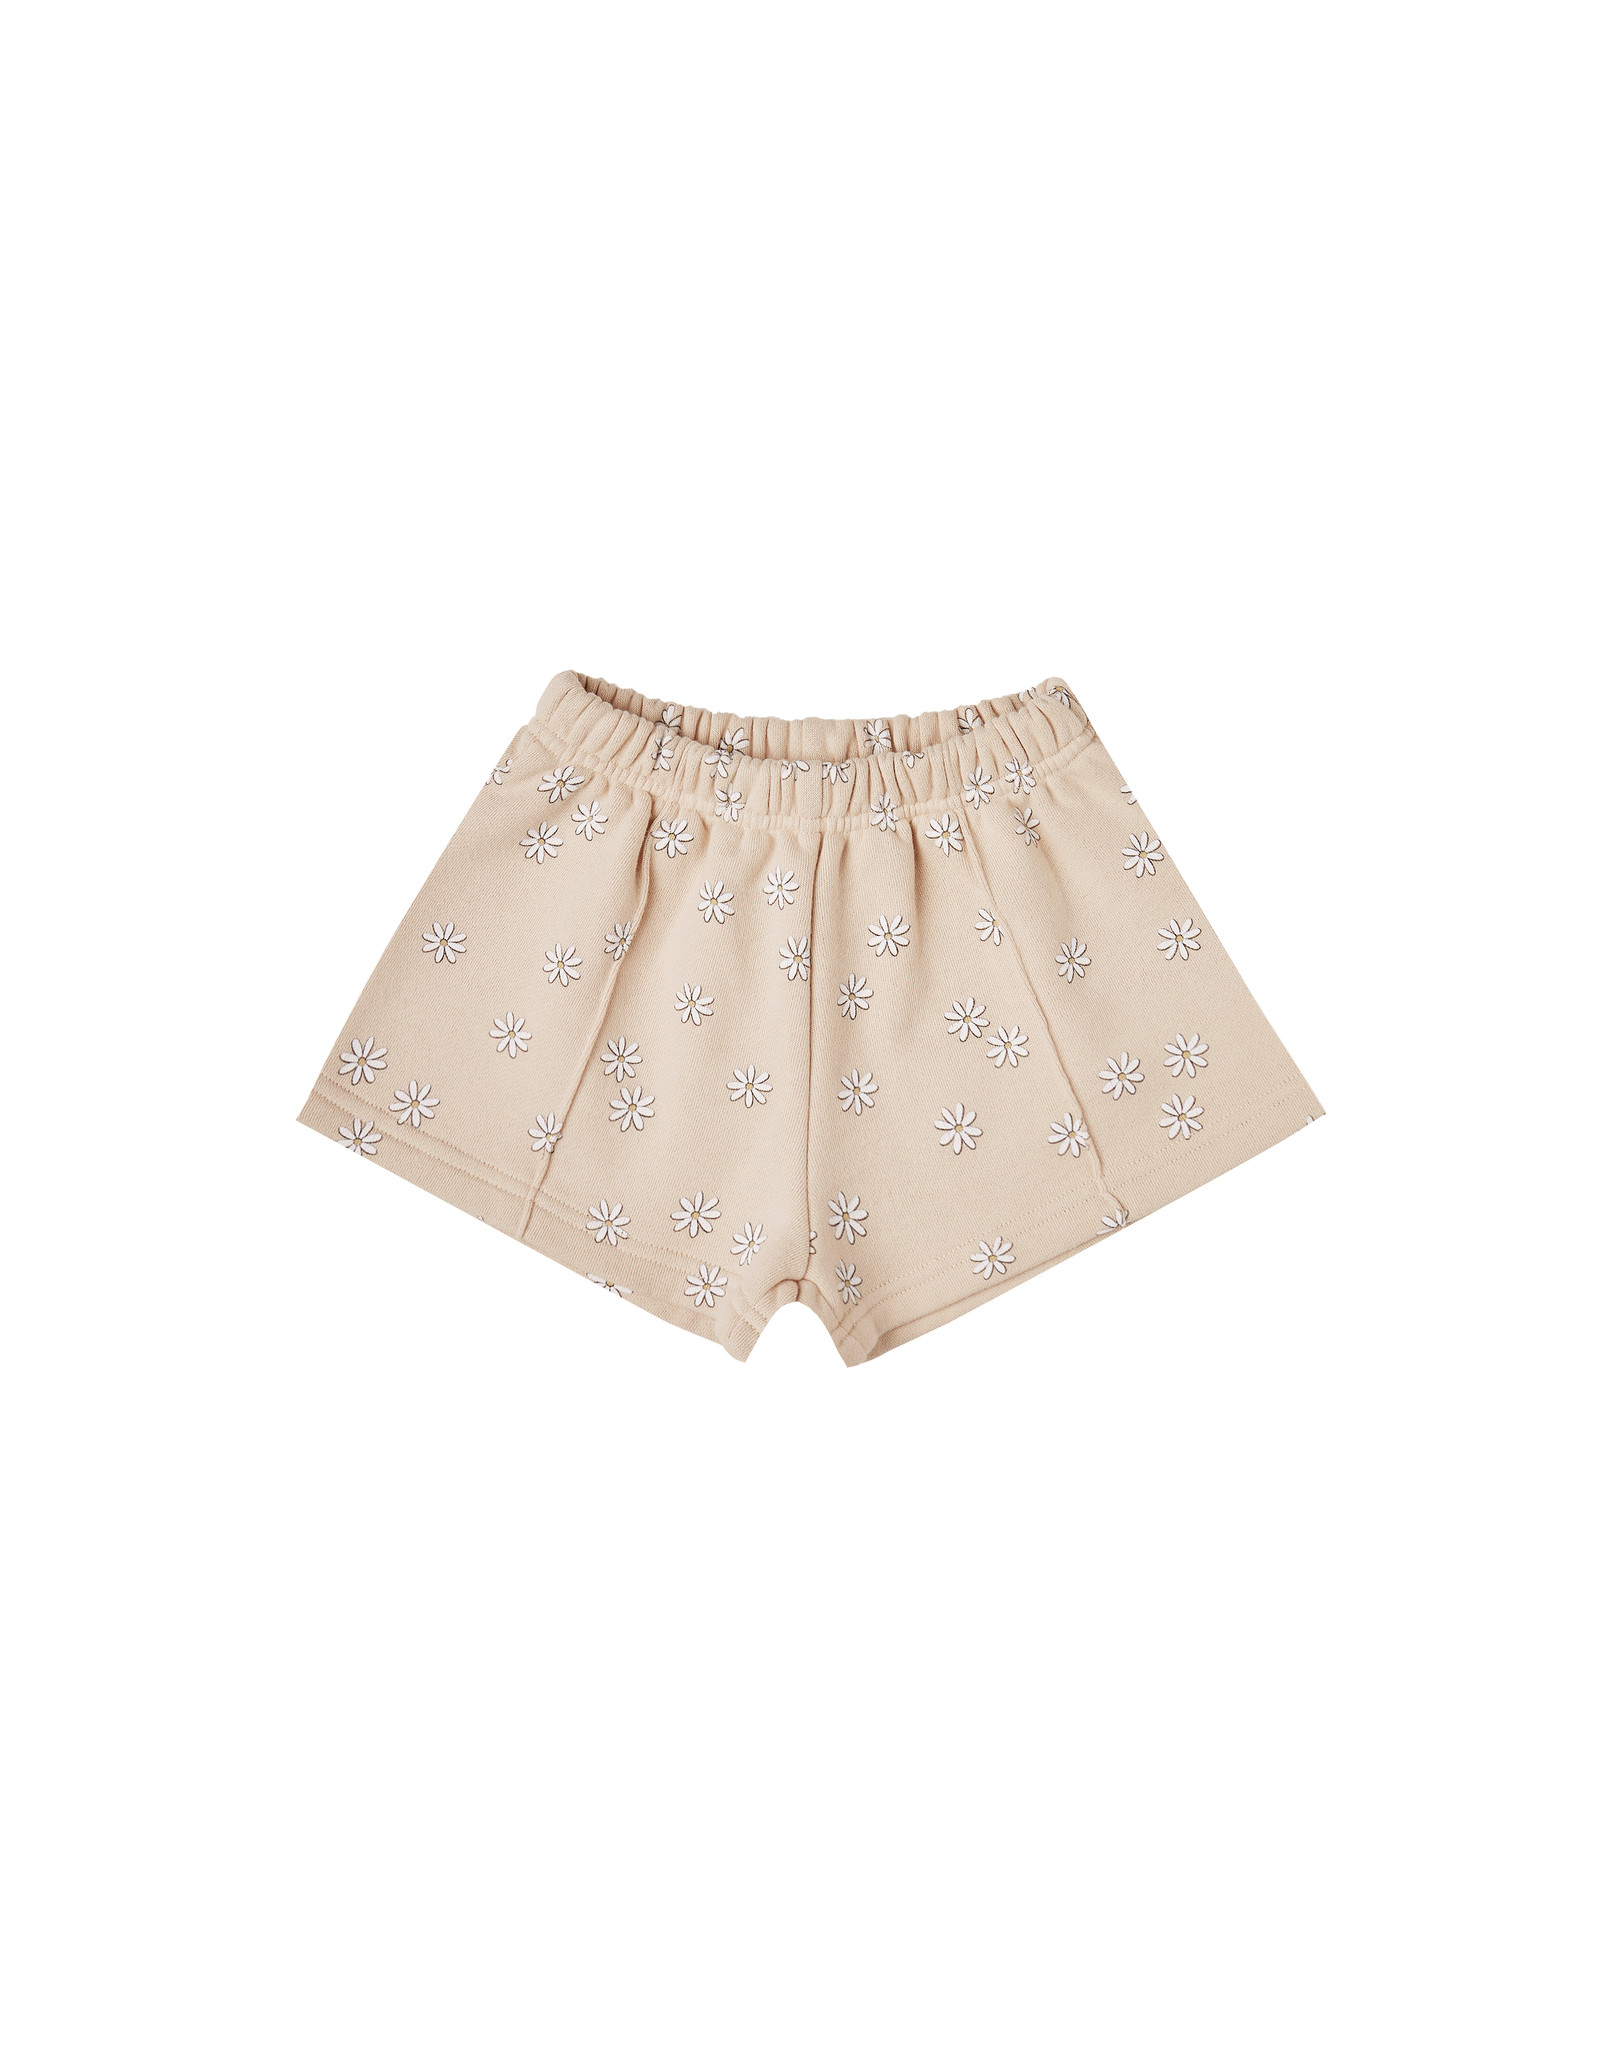 Rylee + Cru Shell Daisy Knit Short